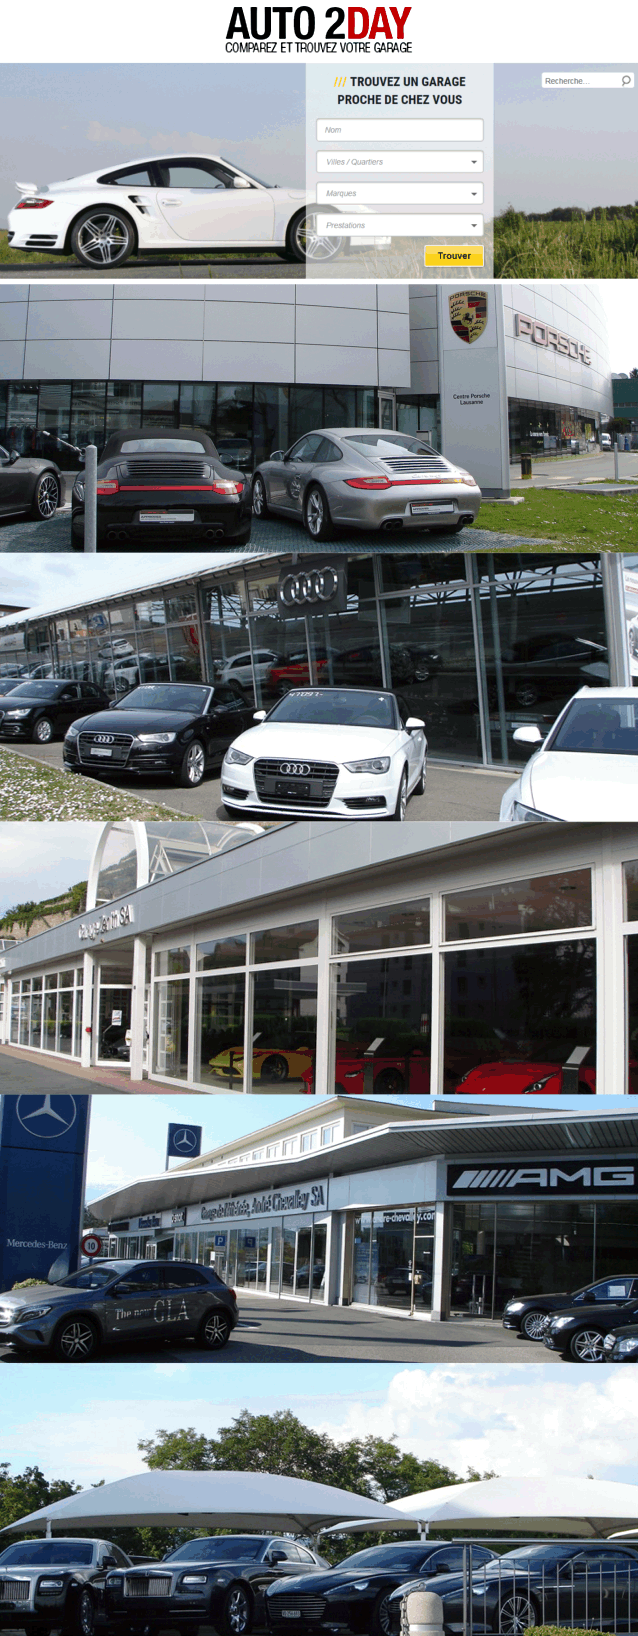 auto2day.ch le plus grand site de garage automobile en suisse romande